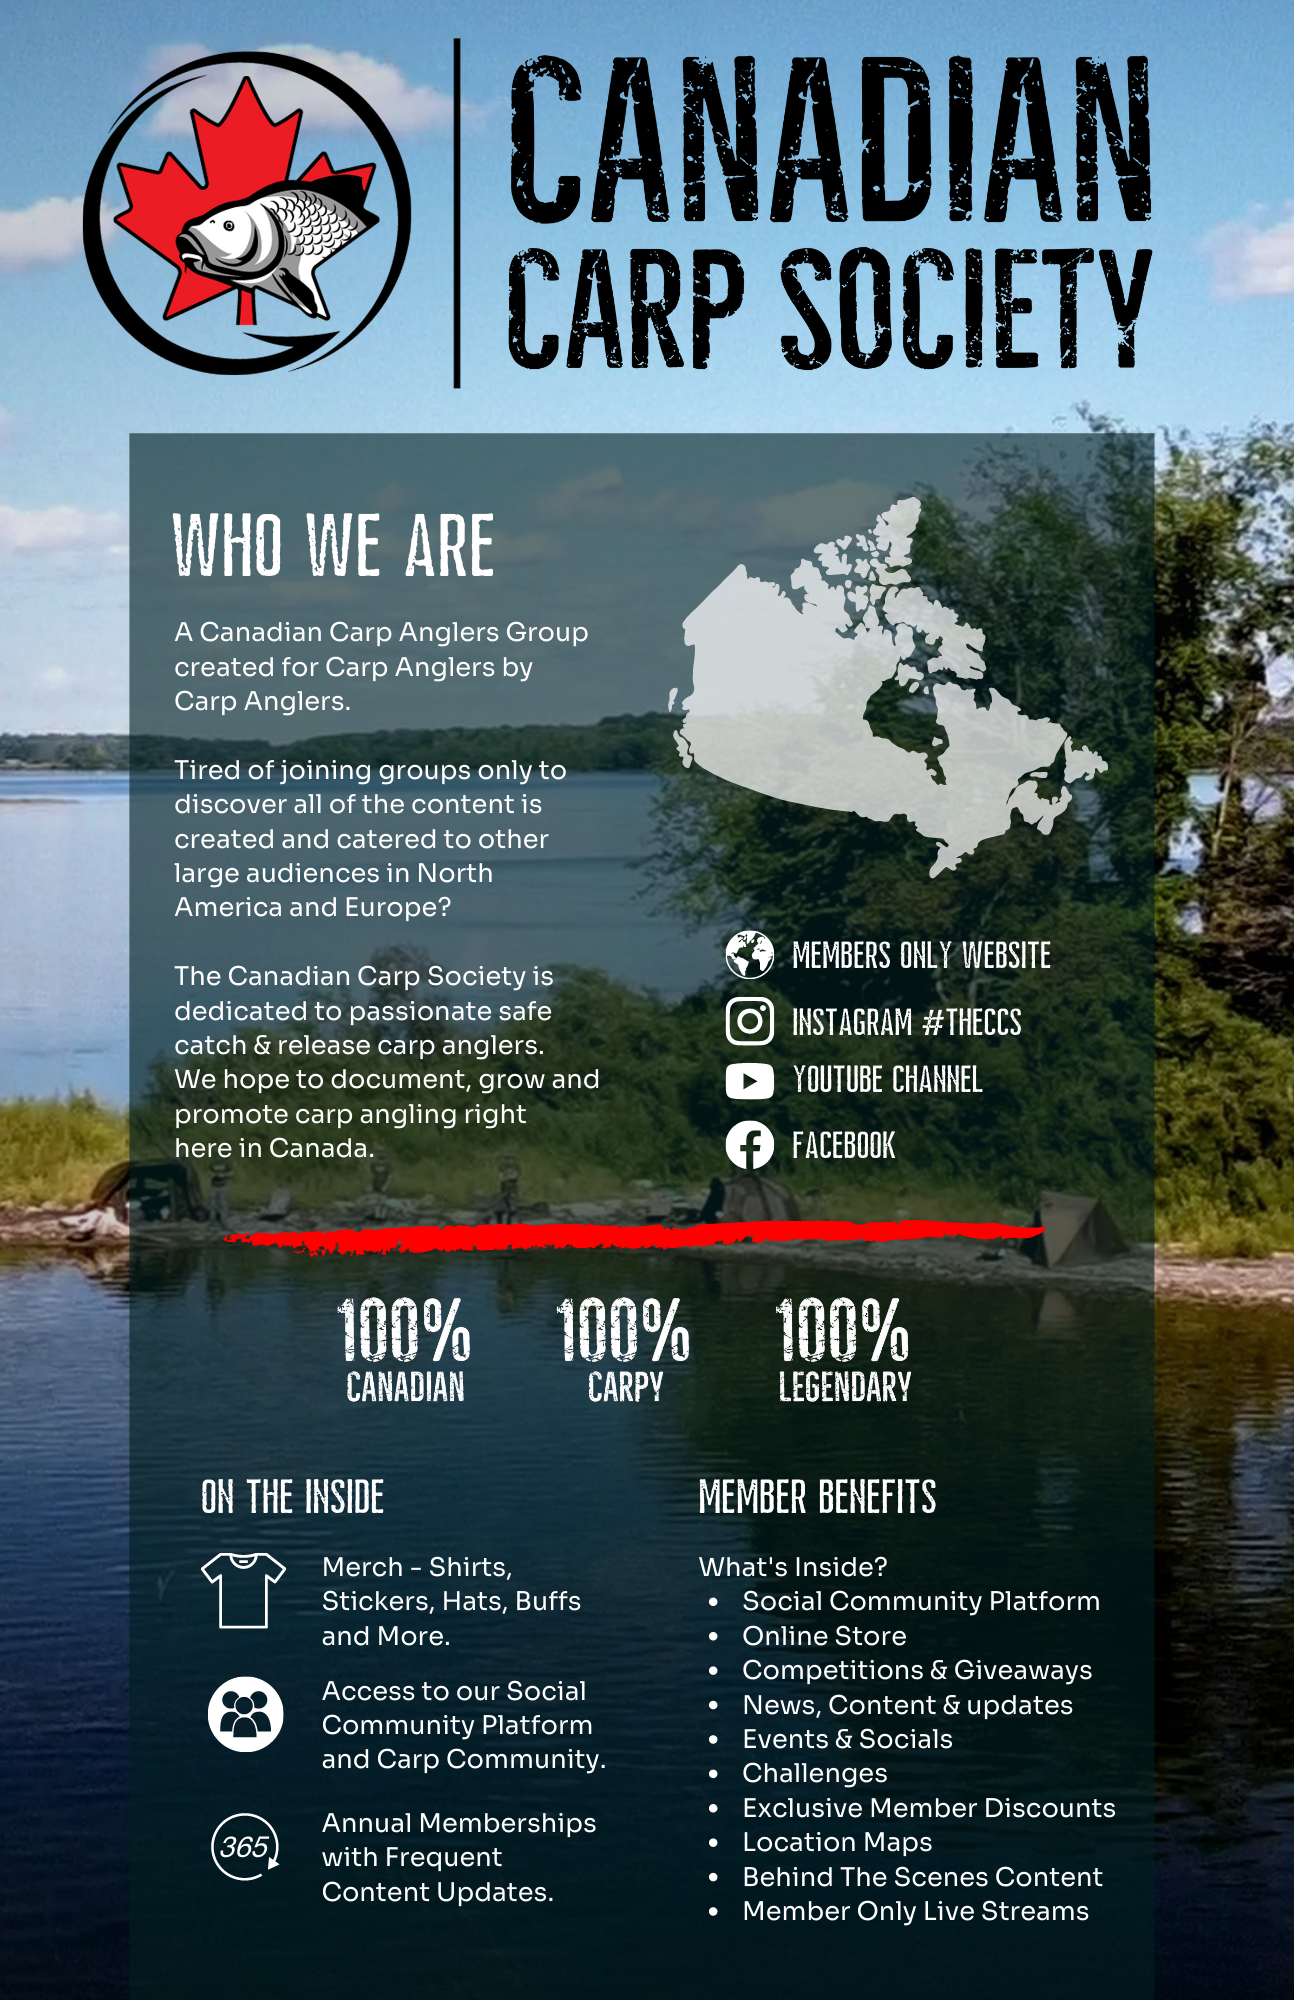 Canadian Carp Society. A Canadian Carp Anglers Group, created by Carp Anglers for Carp Anglers. Tired of joining groups only to discover all of the content is created and catered to other large audiences in North America and Europe? The Canadian Carp Society is dedicated to passionate catch and release carp anglers. We hope to document, grow and promote Carp Angling right here in Canada. Social Community Platform. Online Store & Swag. Competitions & Prizes. Events & Socials. Exclusive Member Deals. Challenges. Locations Sharing (Maps). Welcome Packs (Annually). Behind The Scenes Content. Member Only Live Streams. Dedicated Sponsors. And More.